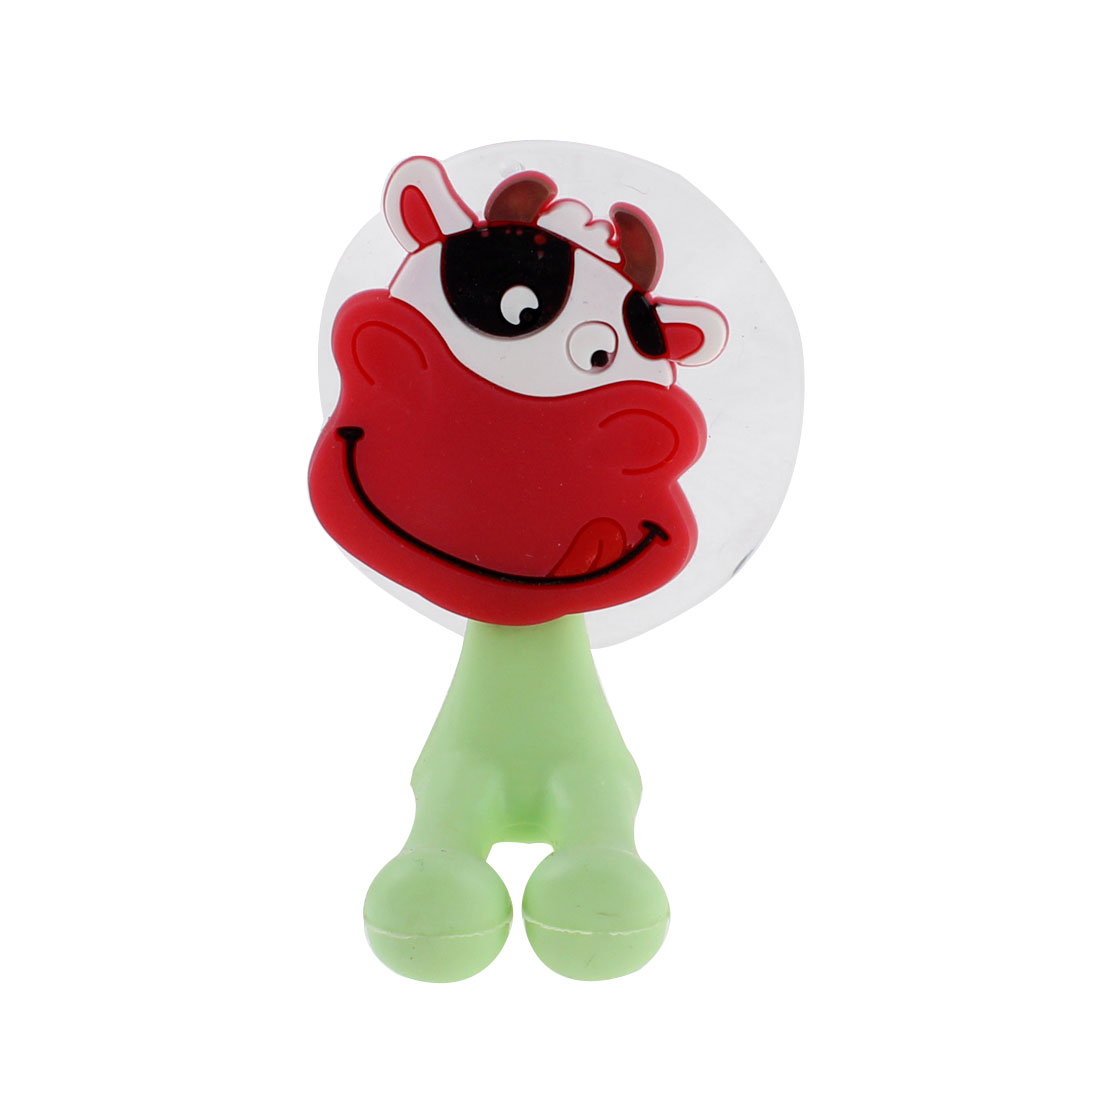 Household Silicone Suction Cup Cow Style Toothbrush Holder Hook Hanger